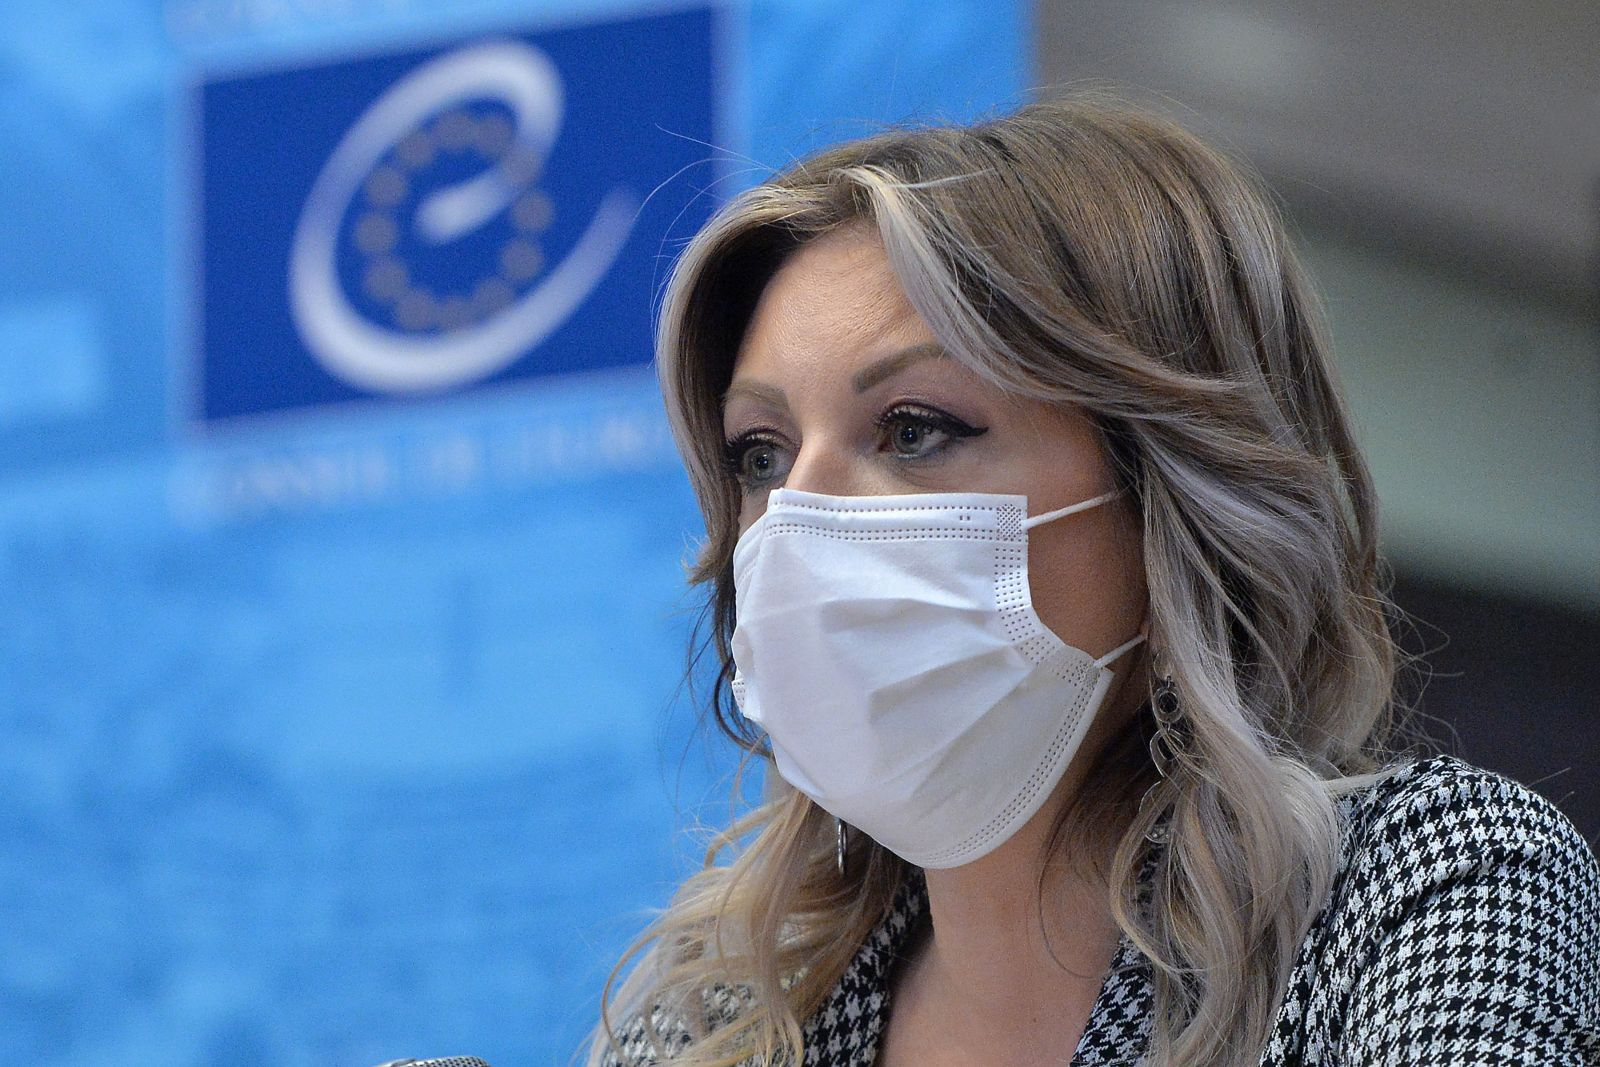 J. Joksimović: Care for citizens and flexible sustainability of Serbia during pandemic